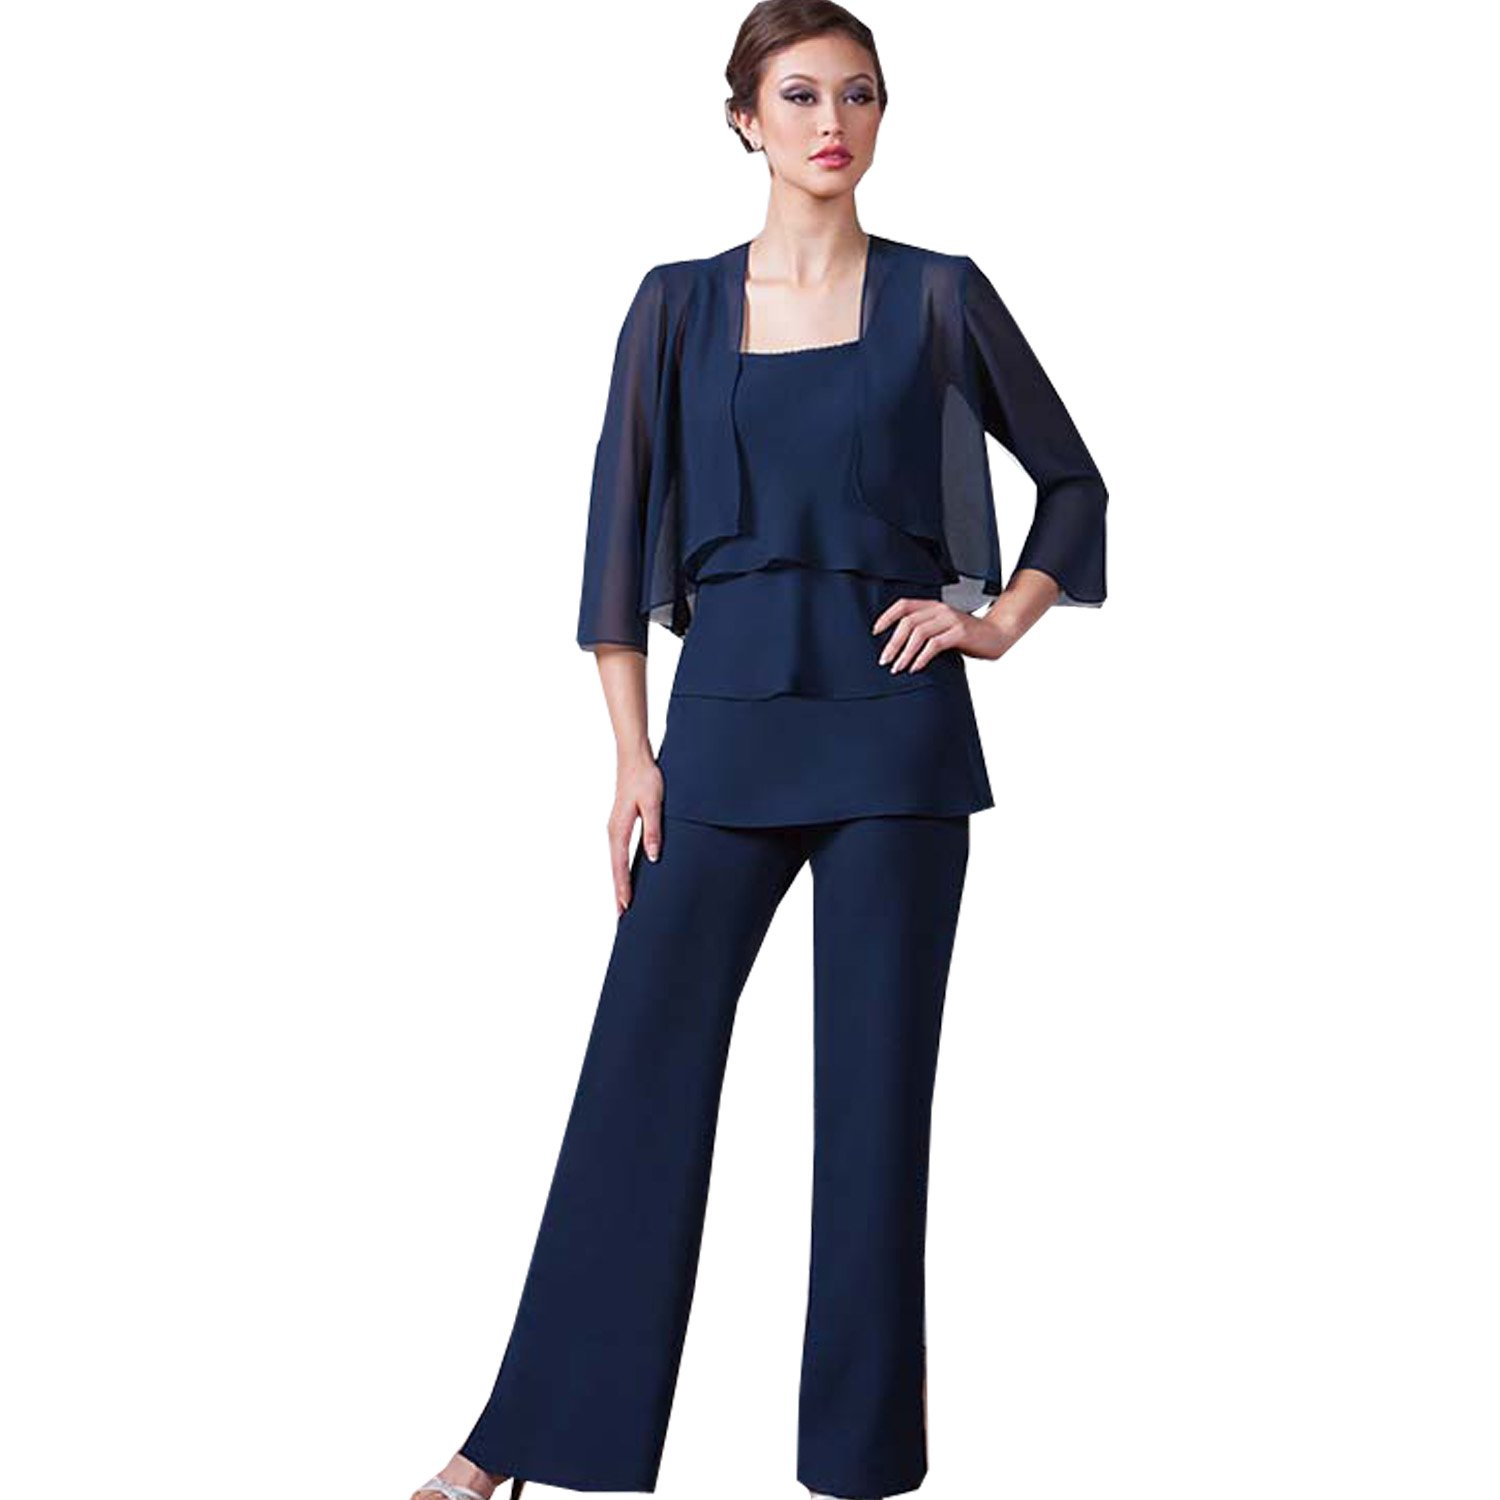 dressvip Spaghetti Strap Sleeveless Dark Blue Chiffon Mother of Bride Coat with Trousers